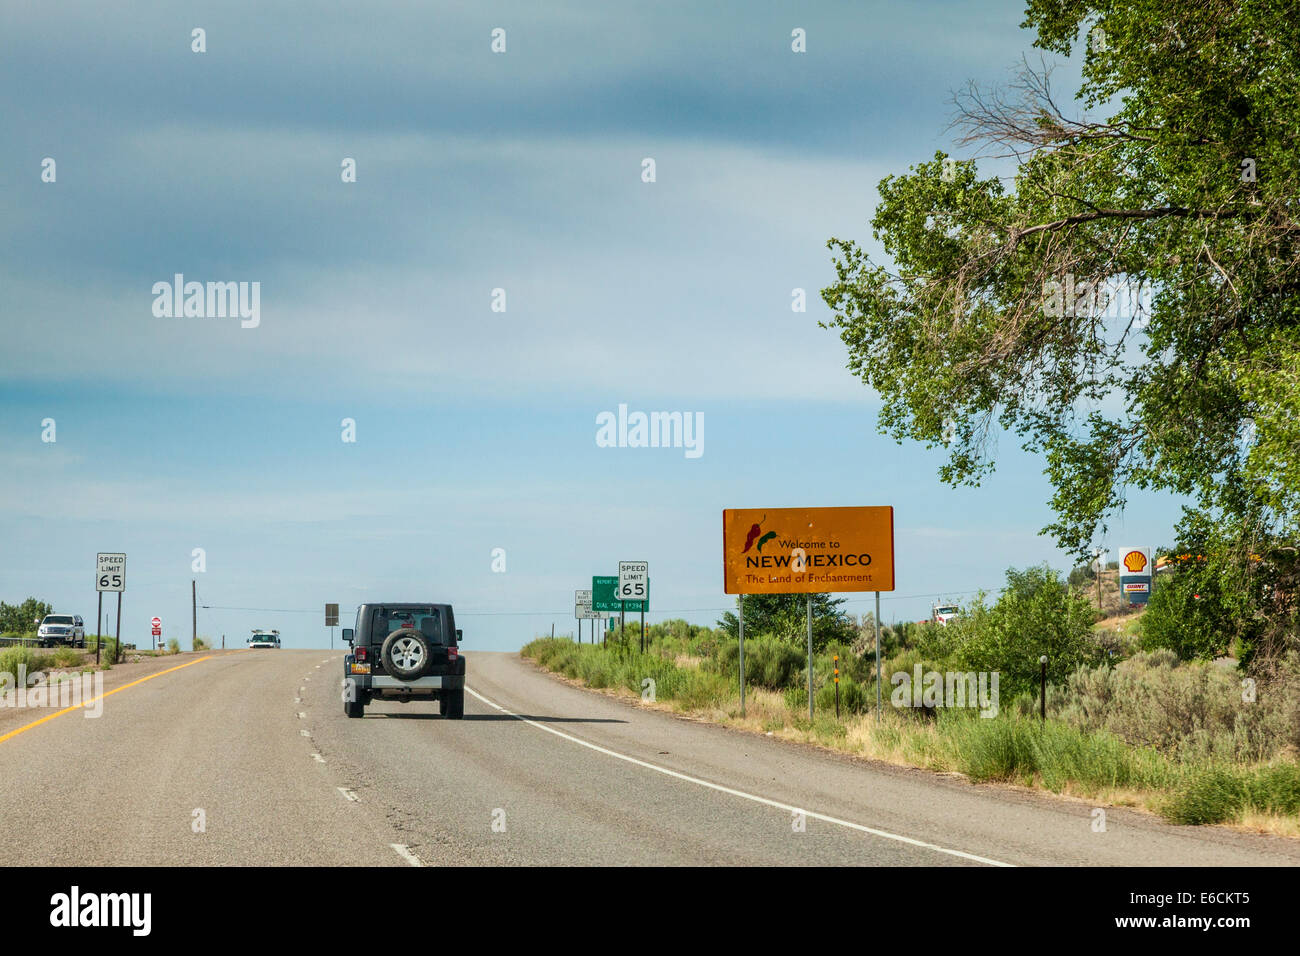 Welcome to New Mexico sign on US 550 highway Stock Photo